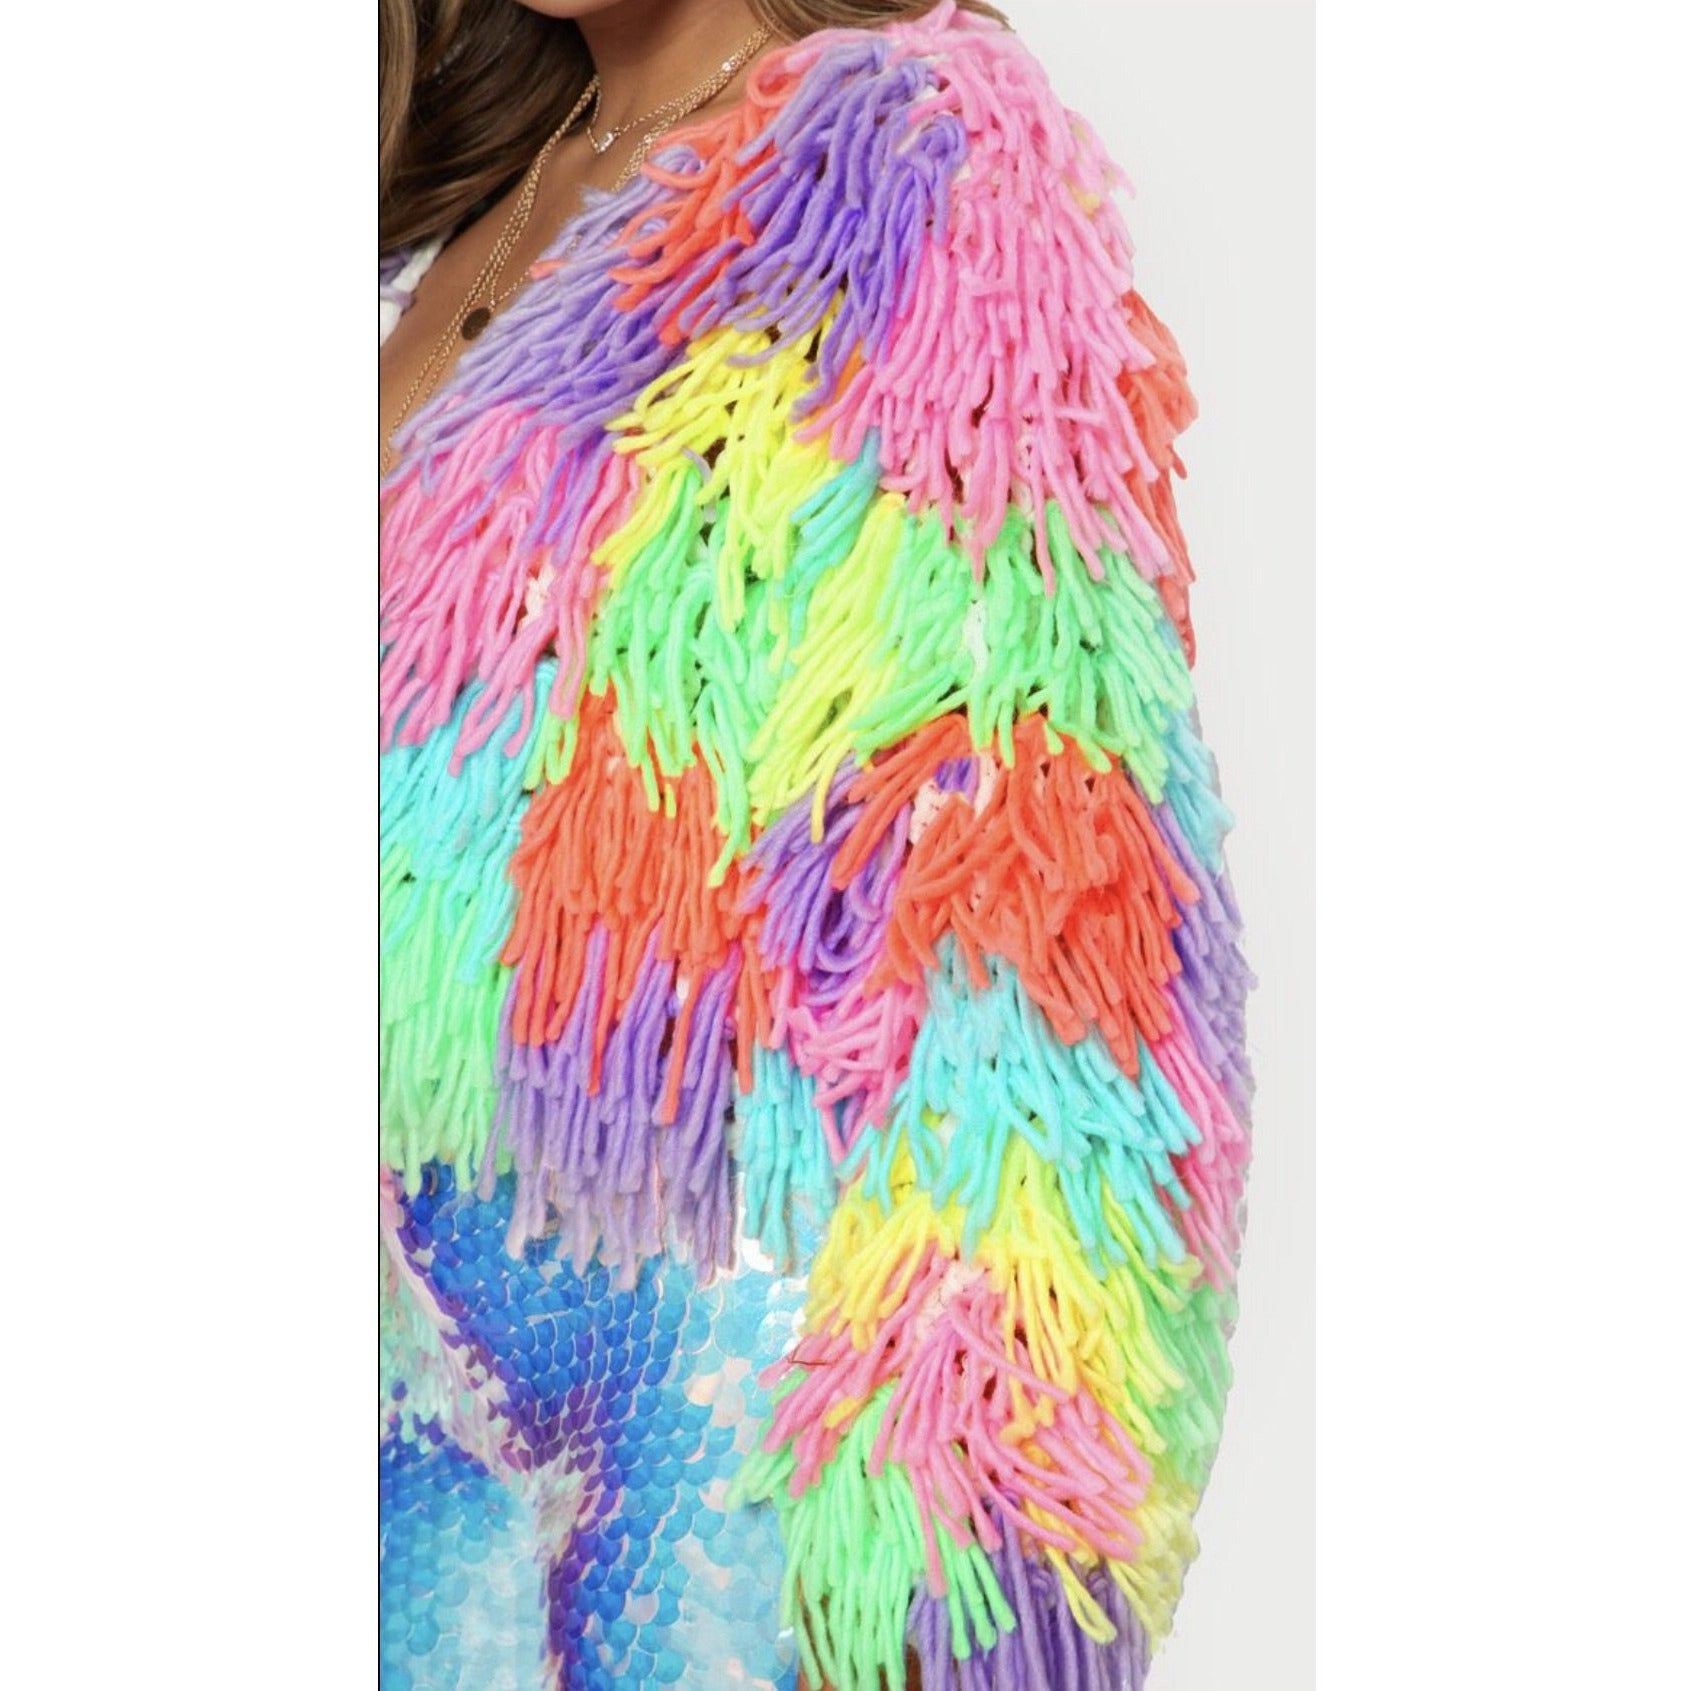 Sherbet Neon Shaggy Sweater